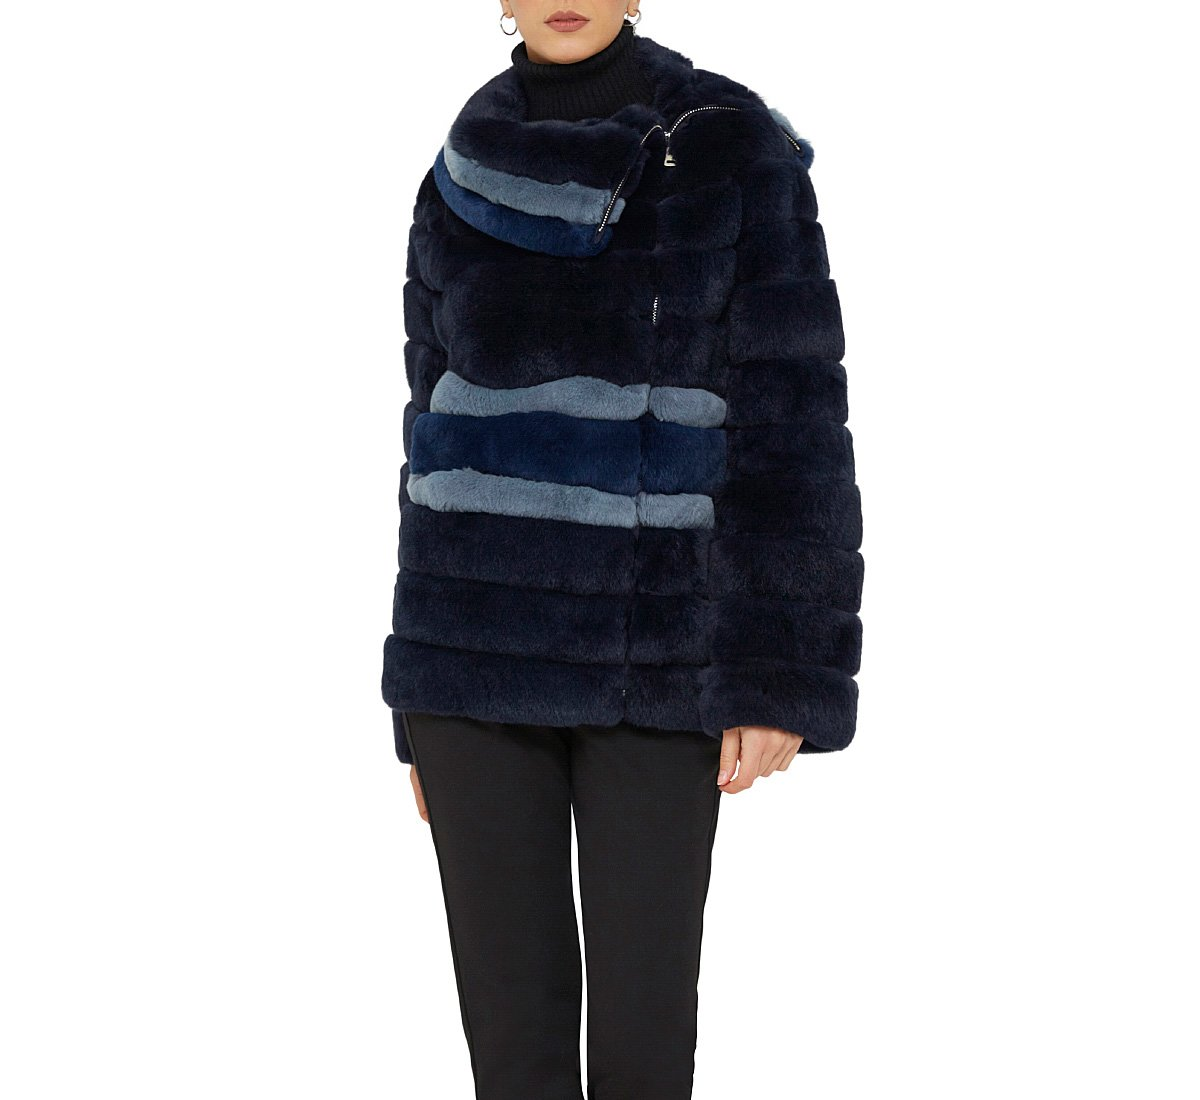 Genuine fur coat with hood